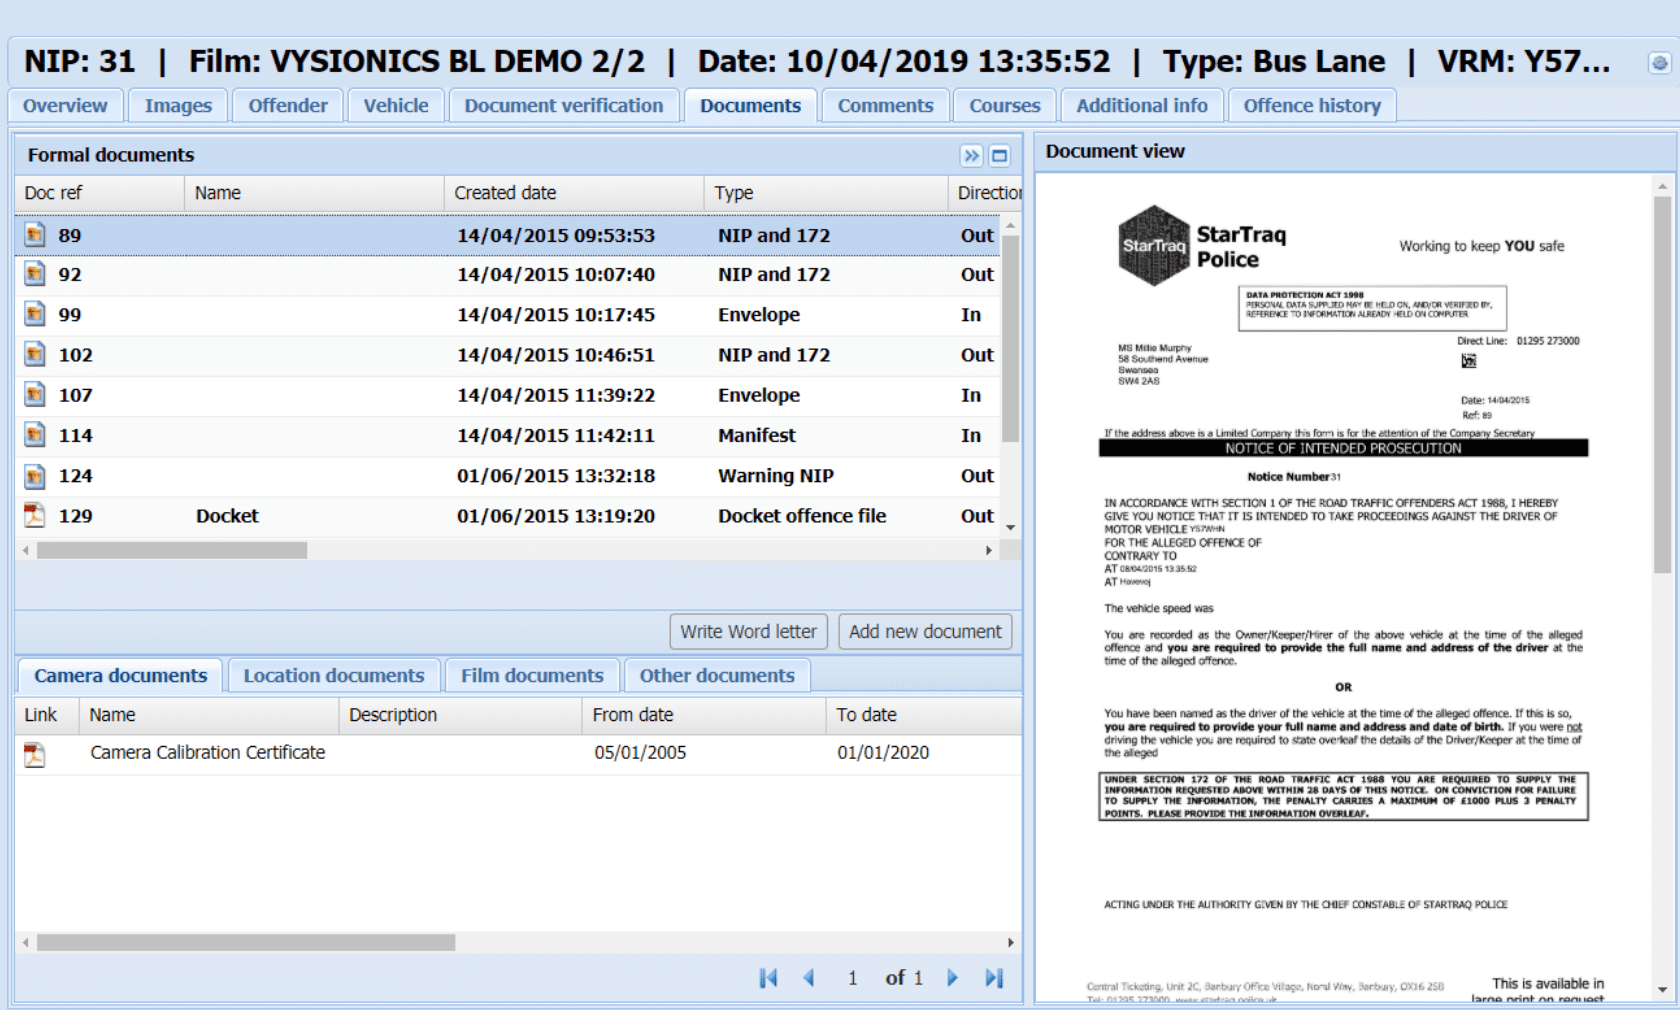 Dome's document management solution stores all documents relating to an incident in one place.